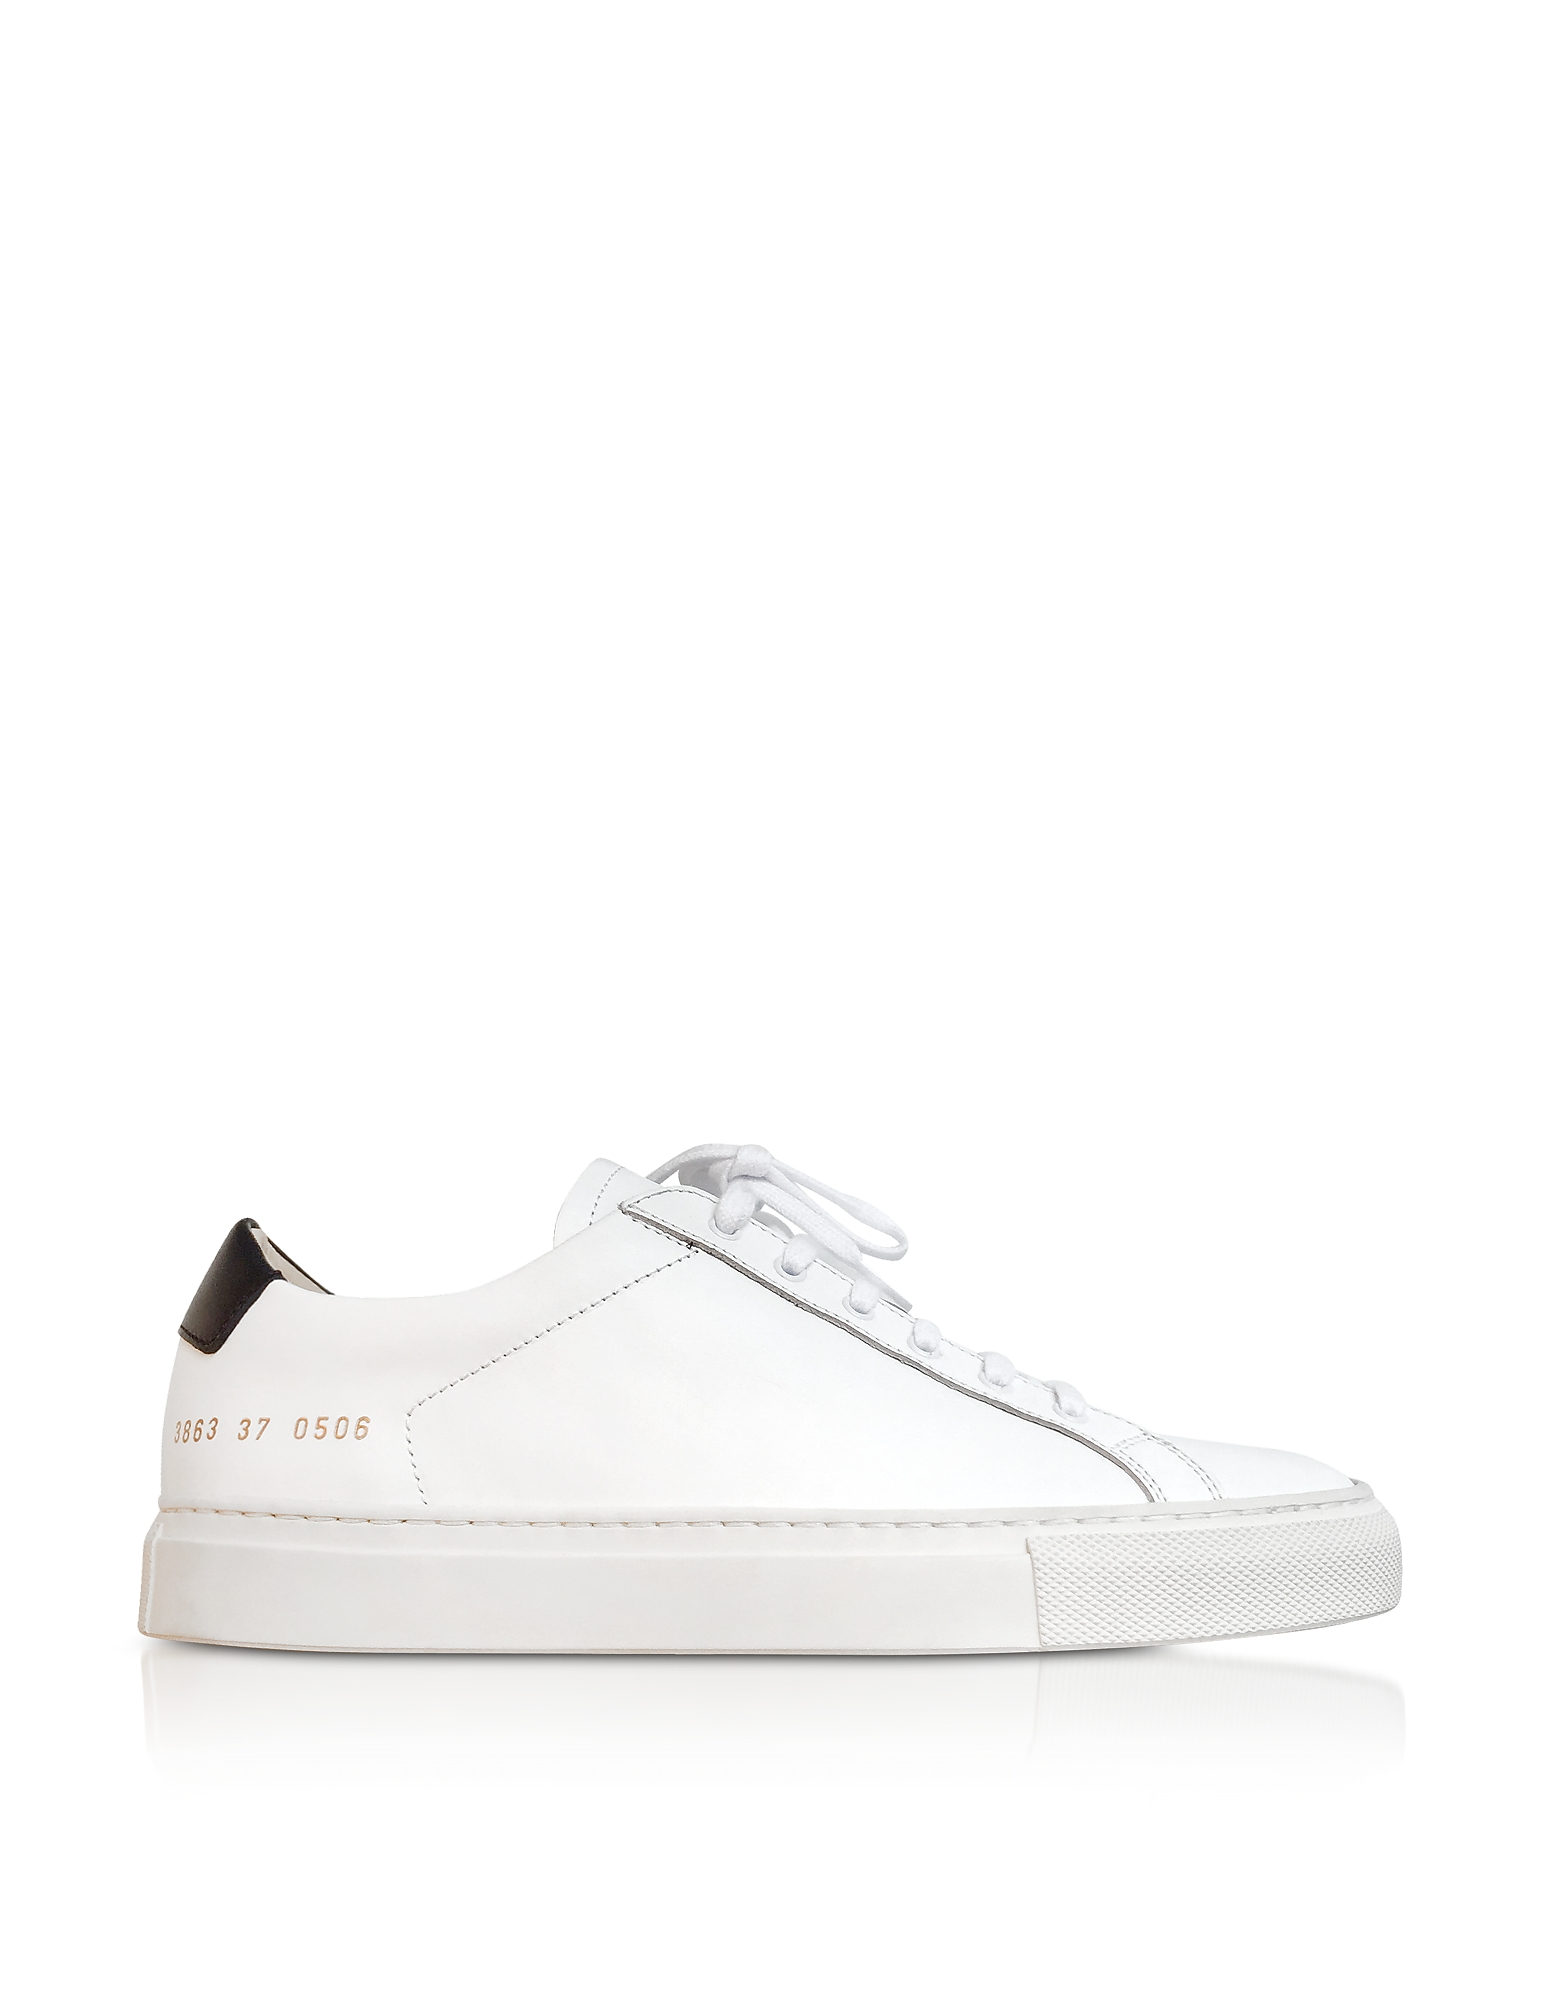 Achilles Retro Sneakers Low Top da Donna in Pelle Bianco Ottico